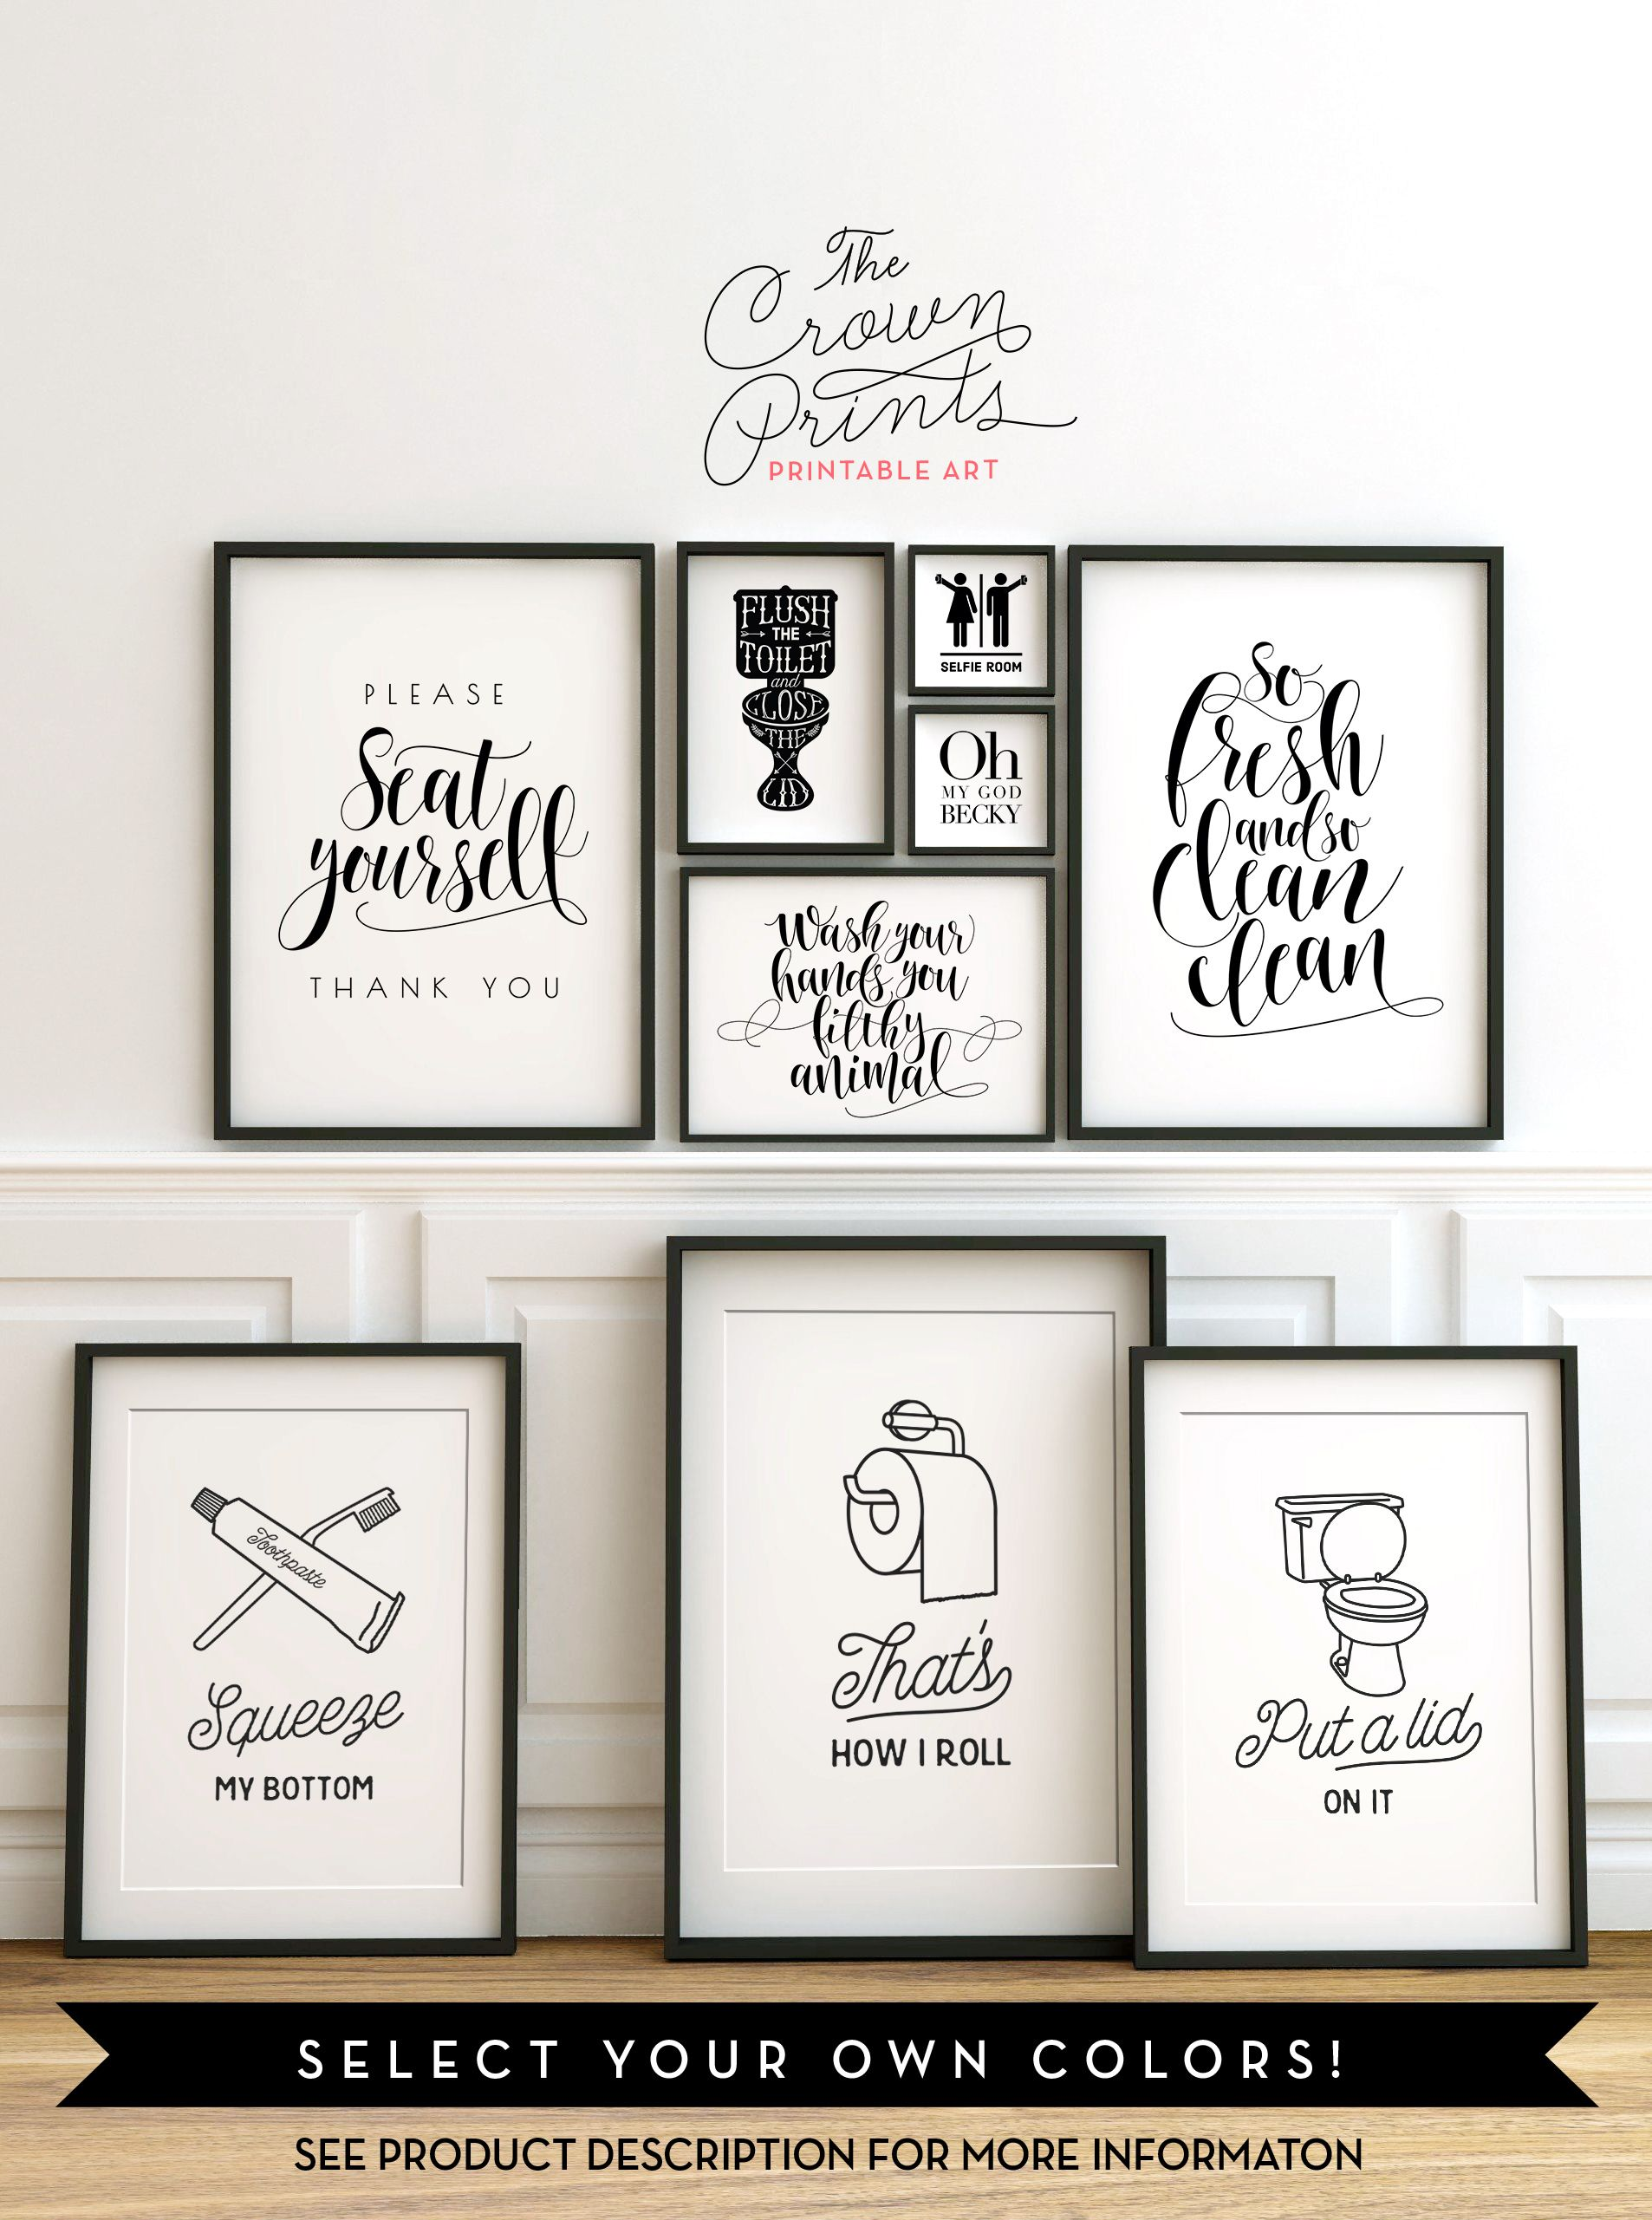 Pin by Sonya Champion on PRINTABLES | Pinterest | Bathroom wall art ...